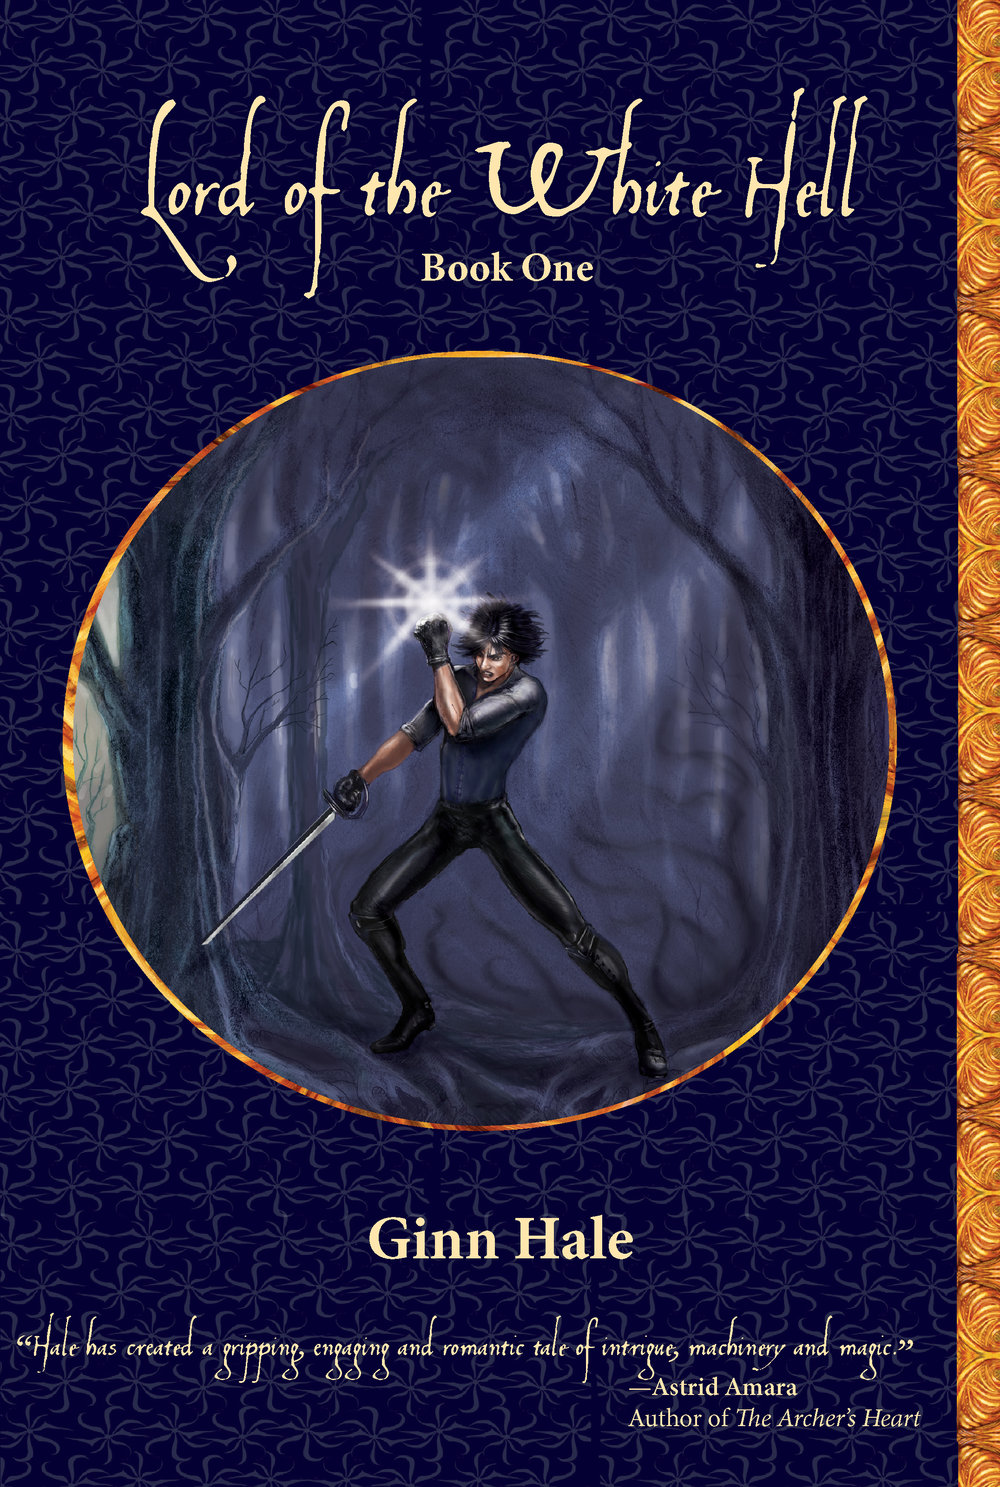 Guest Post and Giveaway: The Lord of the White Hell by Ginn Hale